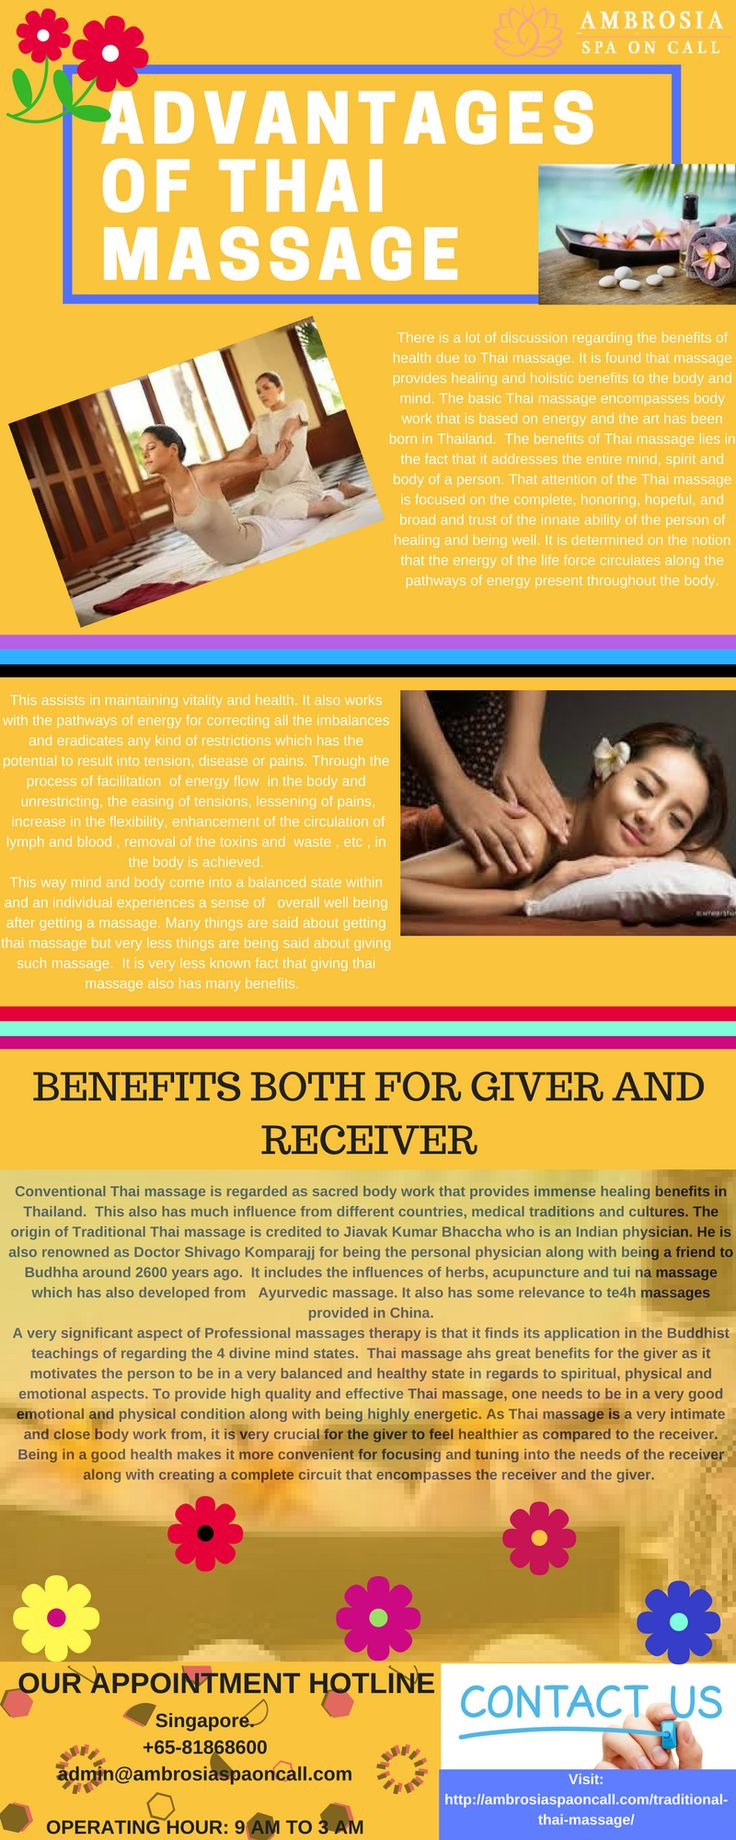 Ambrosia Spa on call provides you the best traditional Thai massage in Singapore at affordable costs. We provide other services like: Spa massage Singapore Home massage service Singapore Back therapeutic massage For more details please contact us: +65-81868600 Book your appointment now at: http://ambrosiaspaoncall.com/booked-appointments/